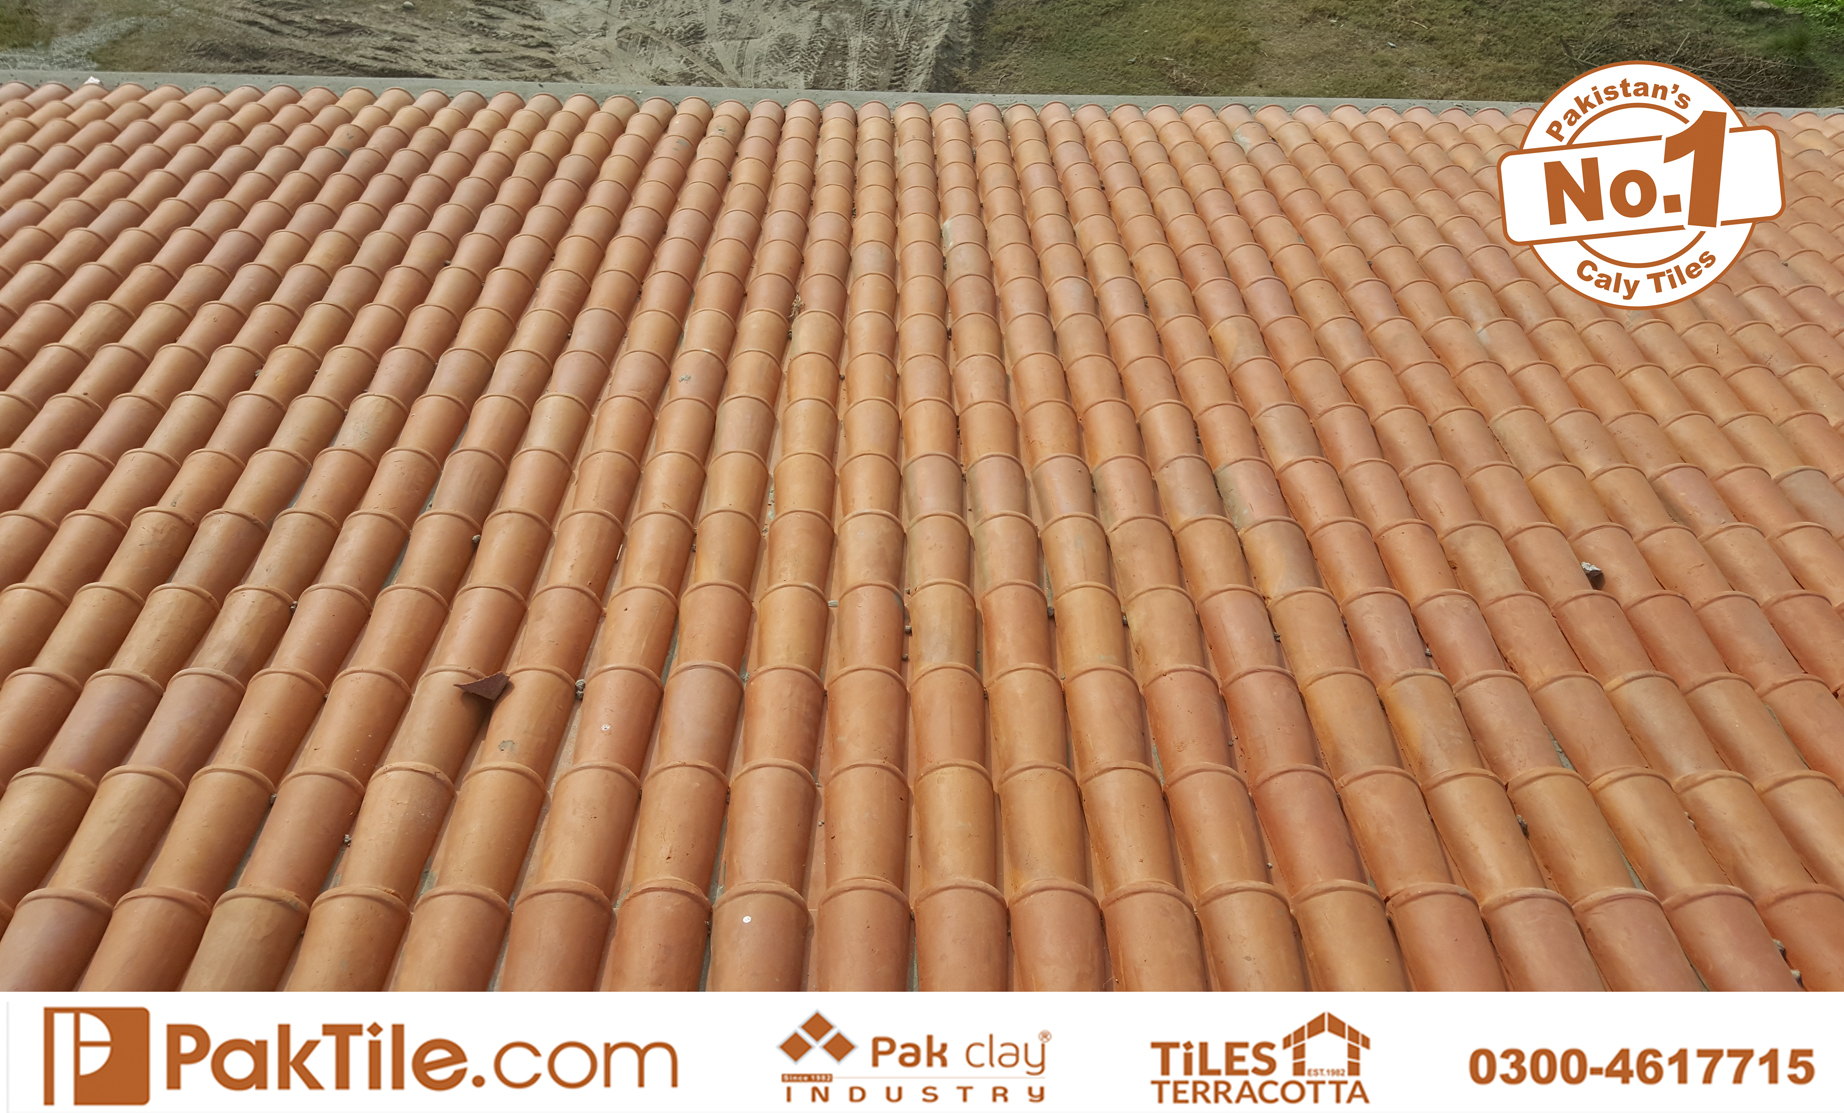 Roofing Services Islamabad Natural Khaprail Tile